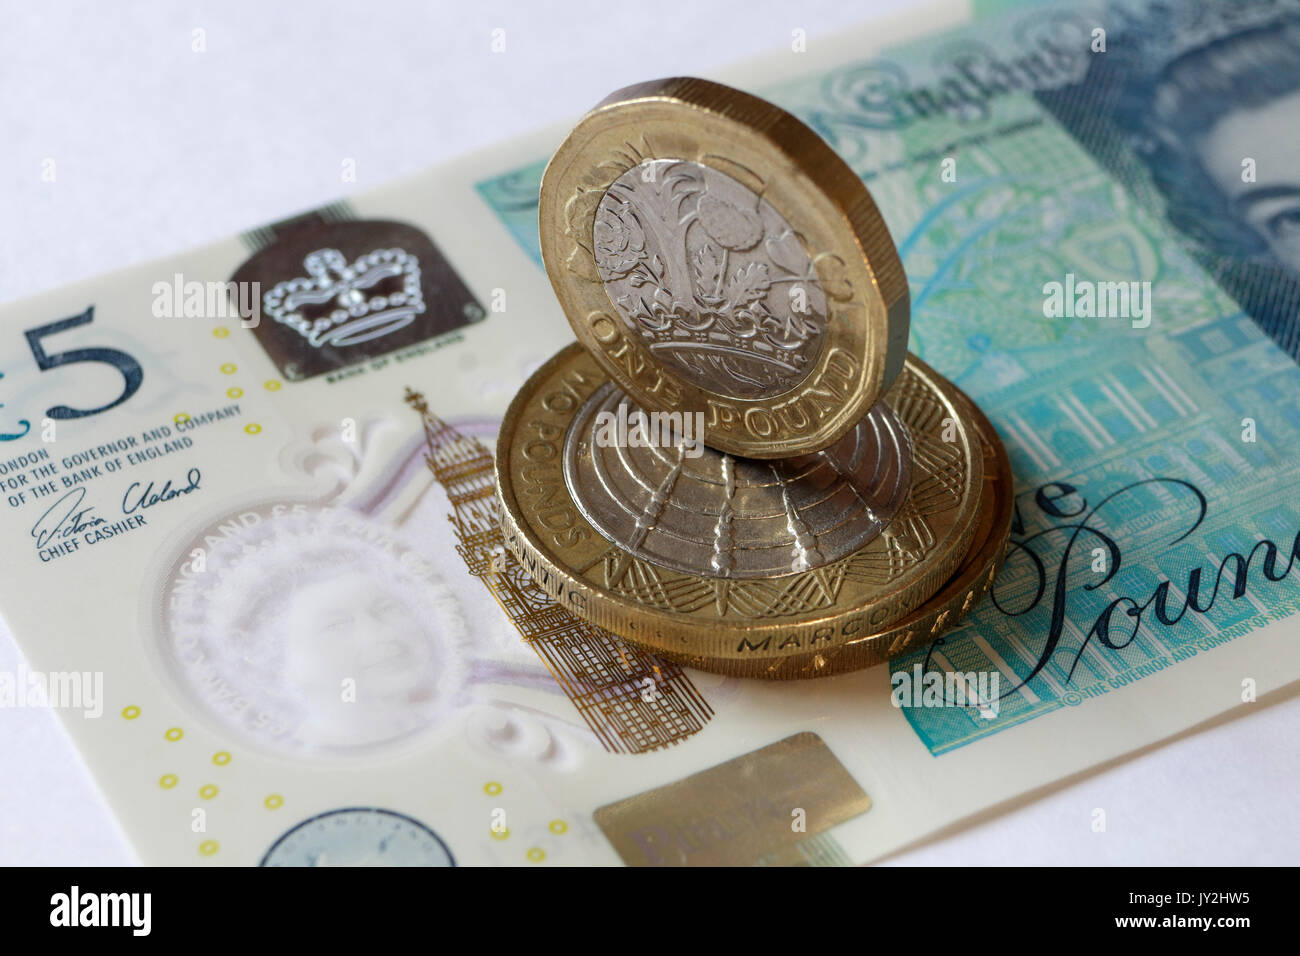 New Pound coin and five pound note - Stock Image